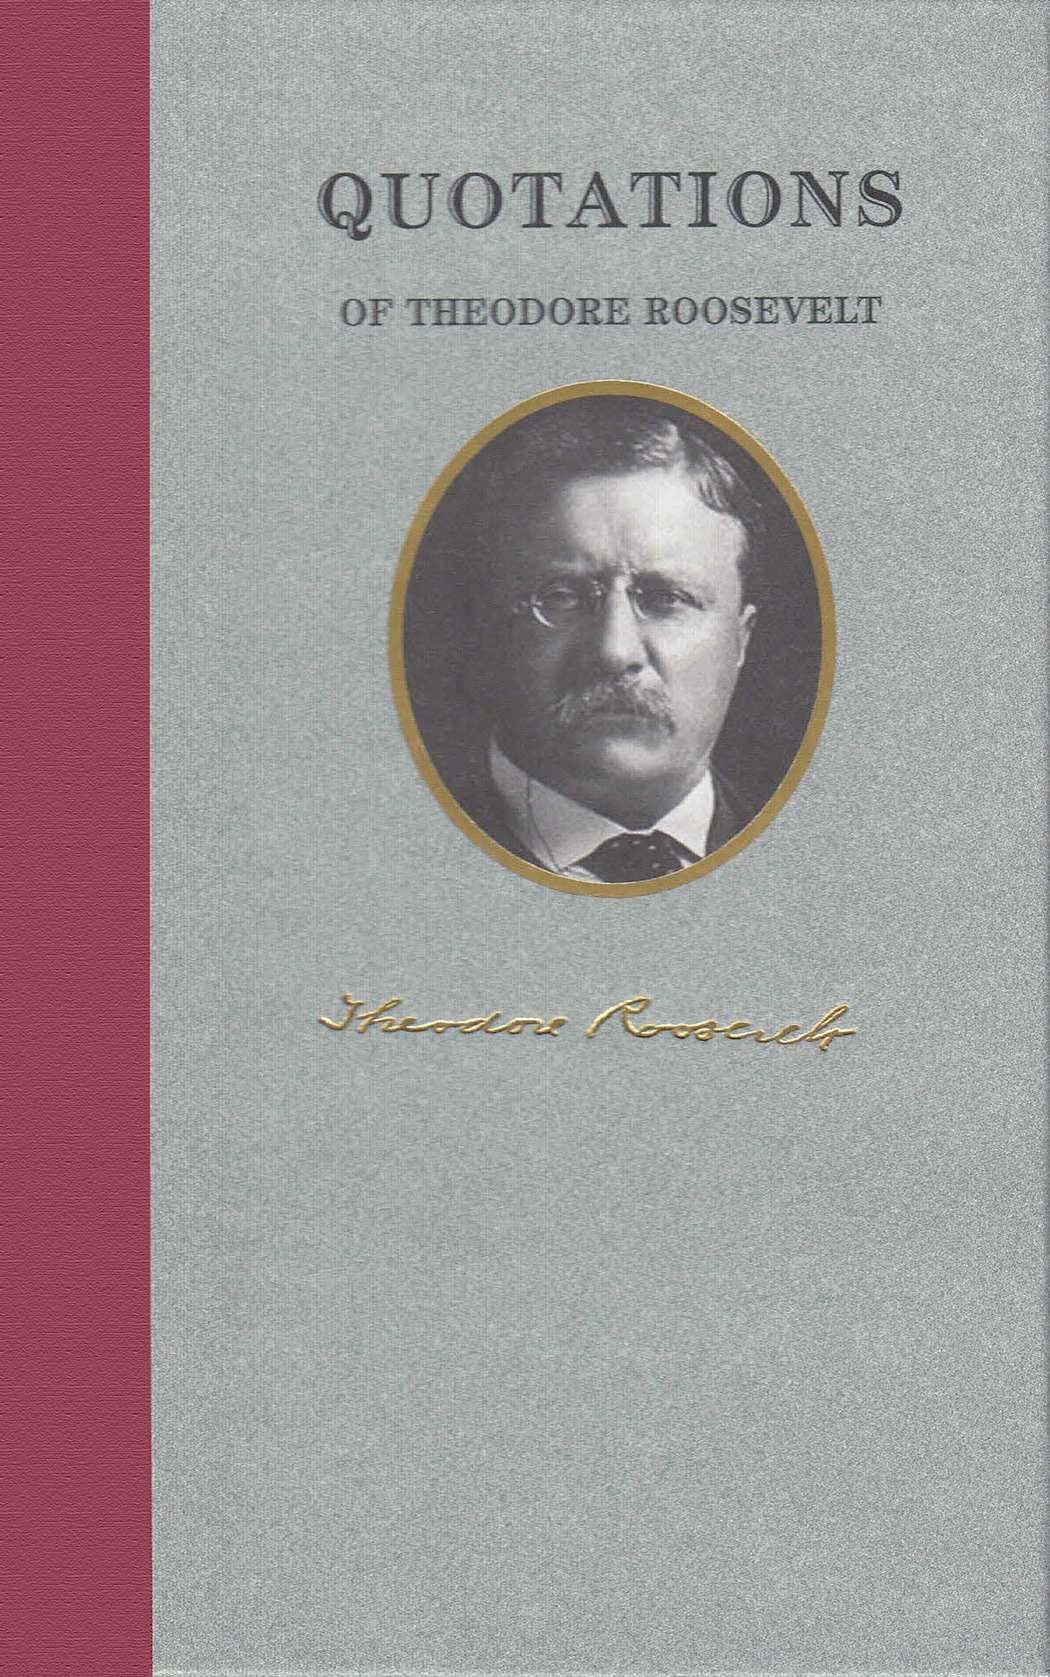 Quotations of Theodore Roosevelt (Great American Quote Books): Theodore Roosevelt: 9781557099464: Amazon.com: Books